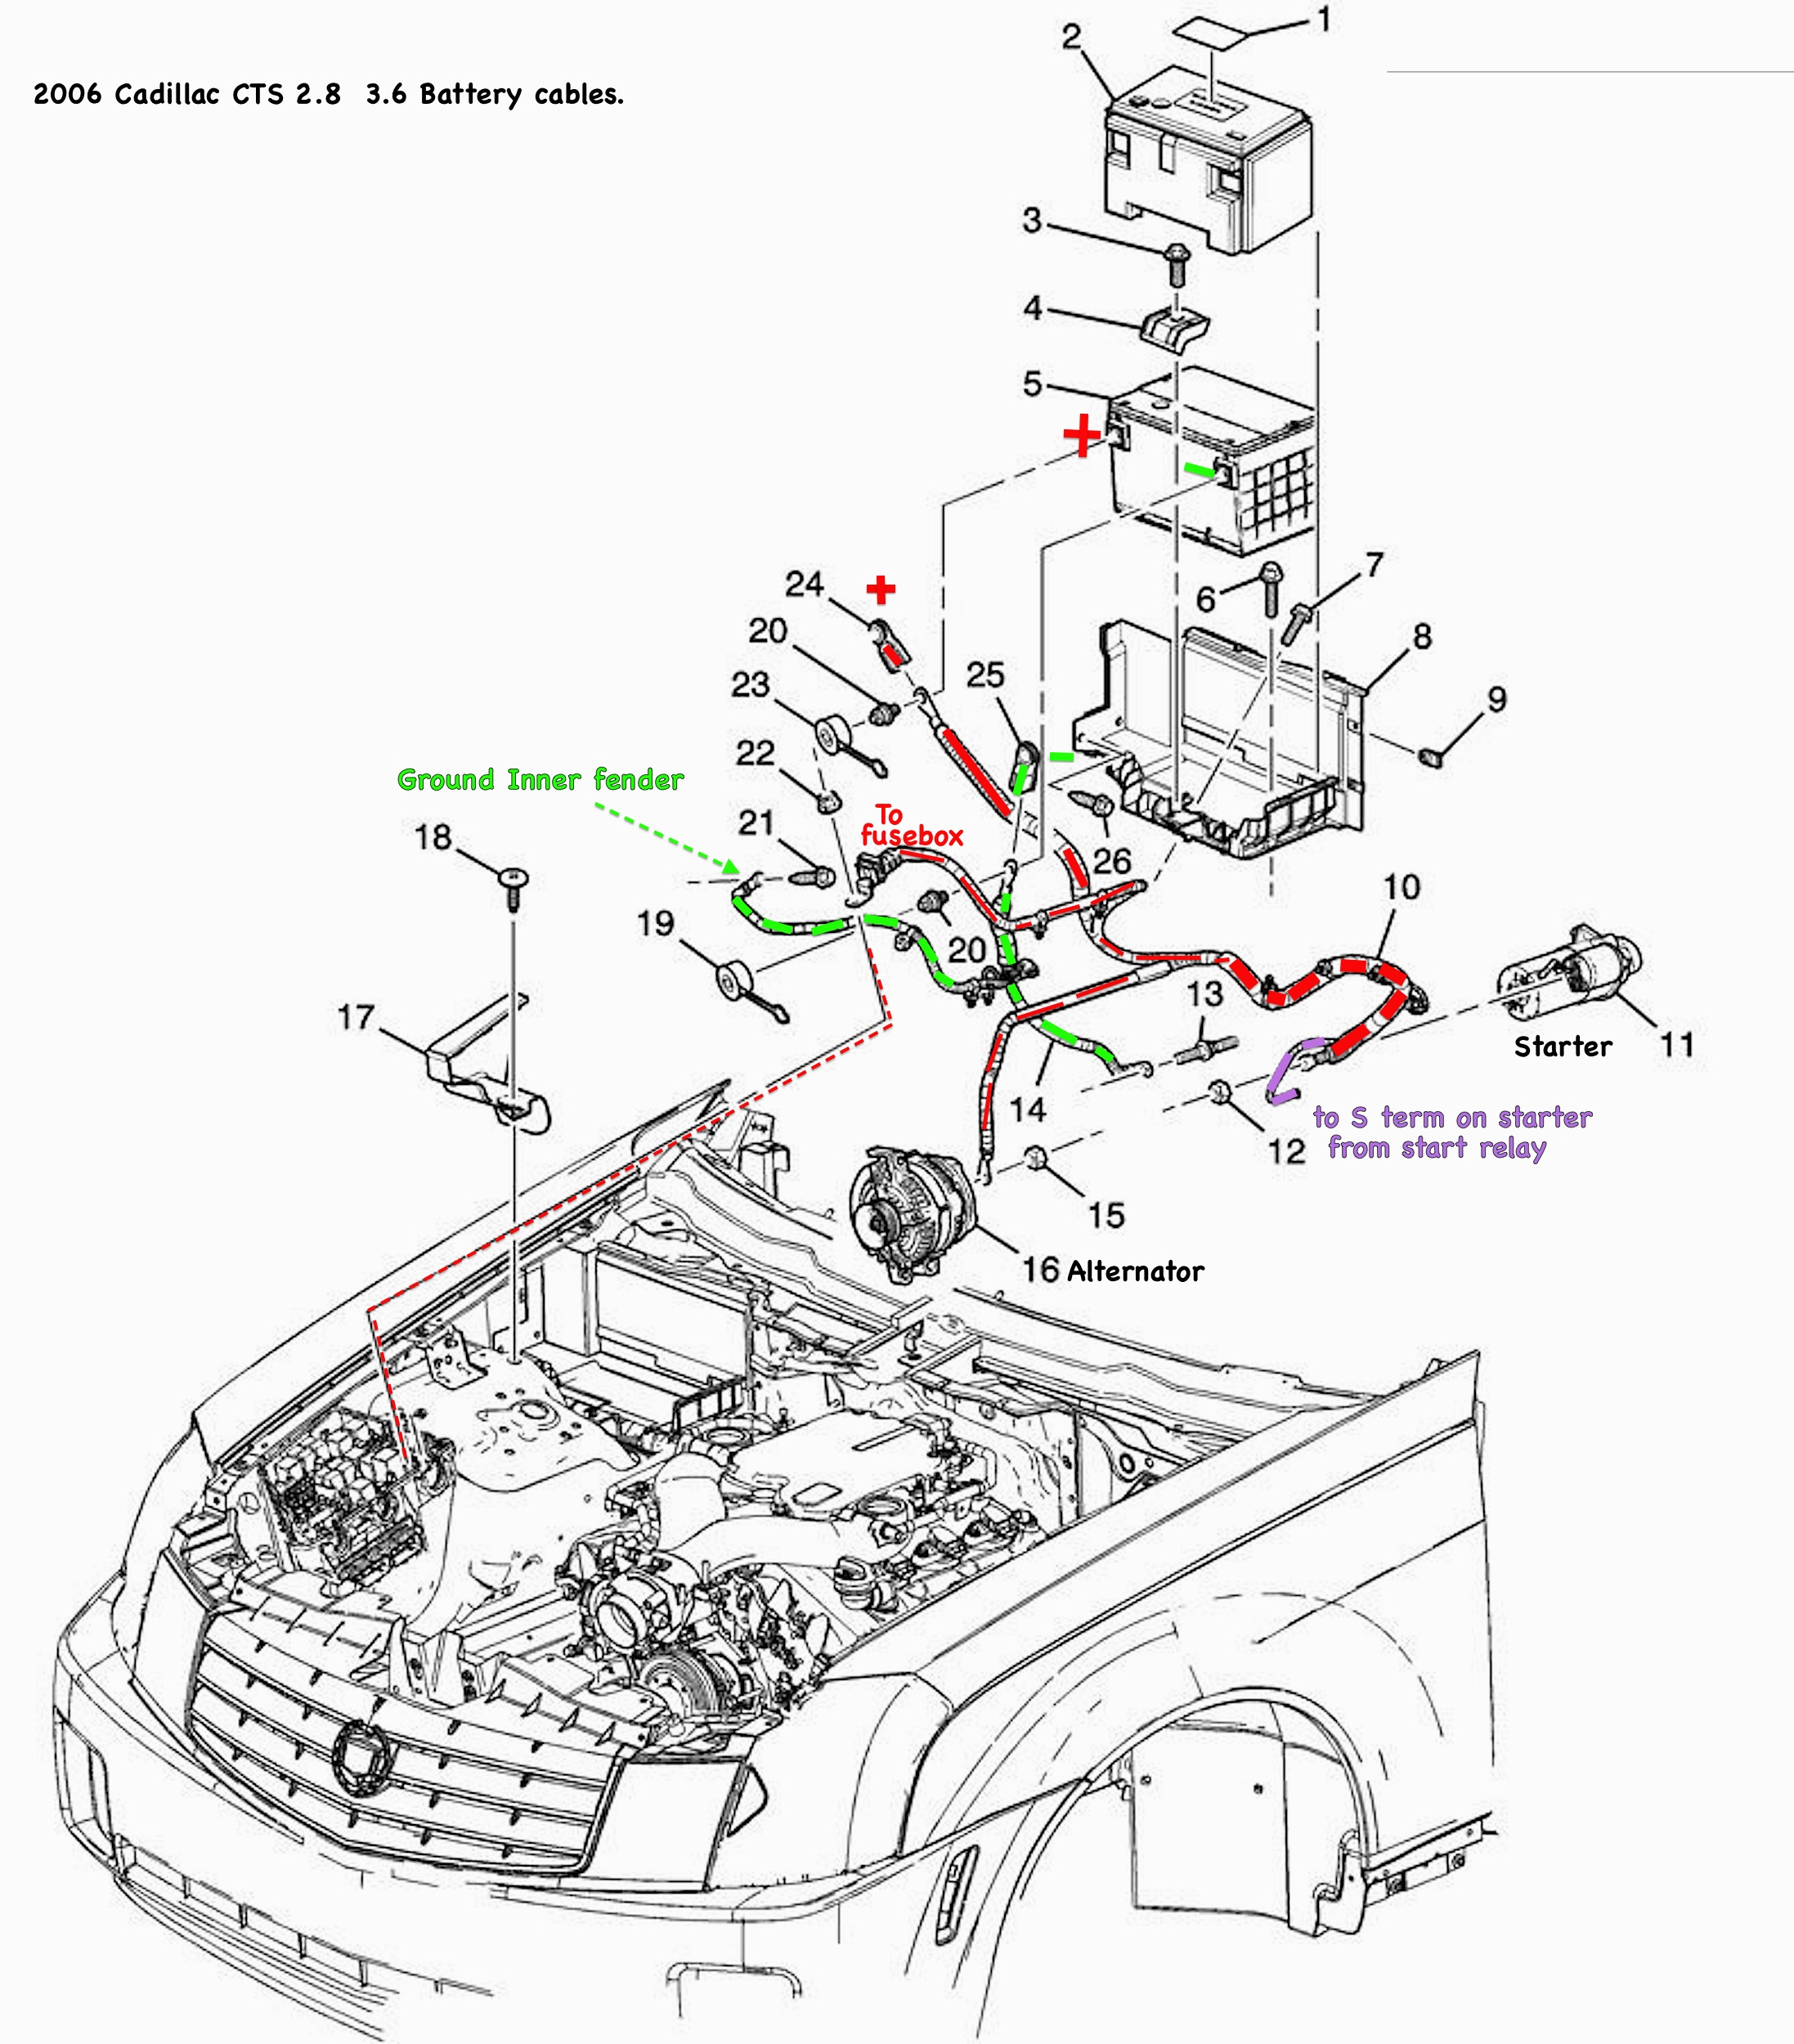 Cadillac Cts Engine Wiring Harness Collection